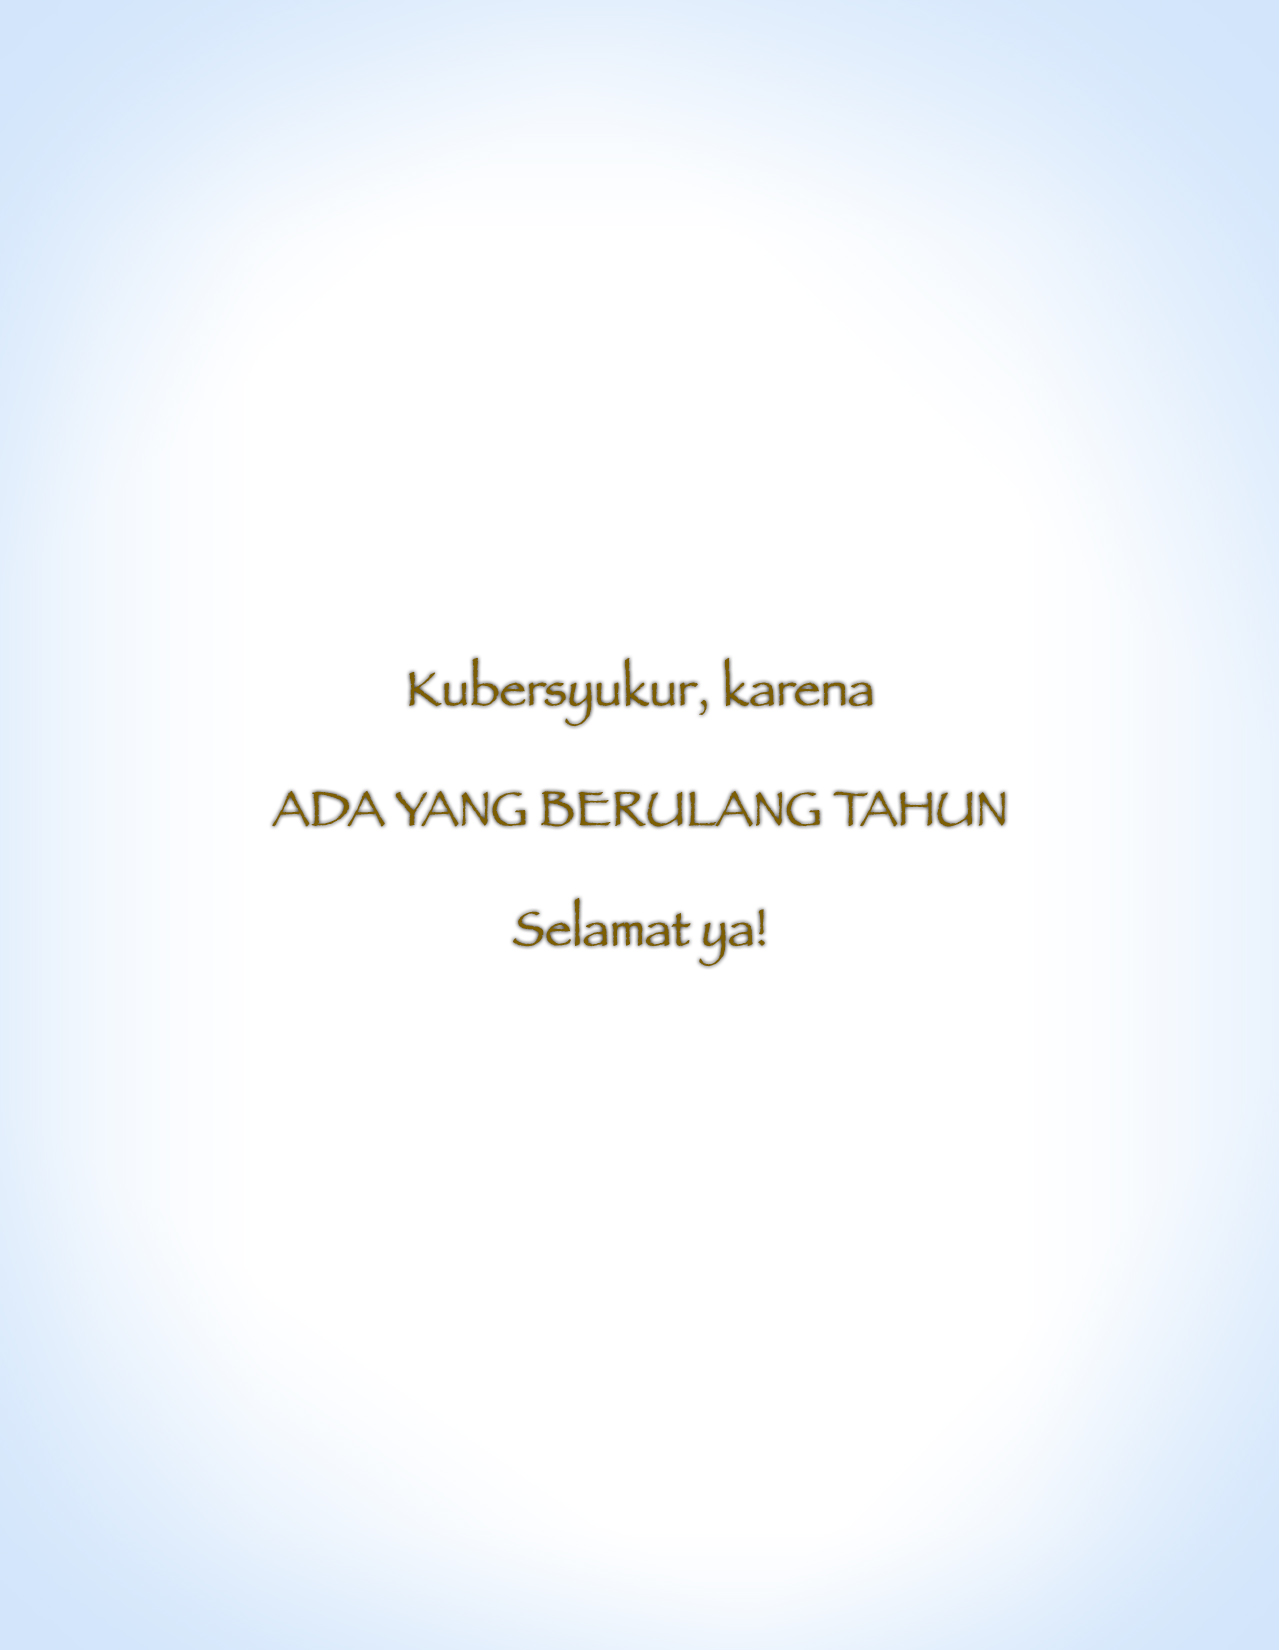 Greeting cards in bahasa indonesia m4hsunfo